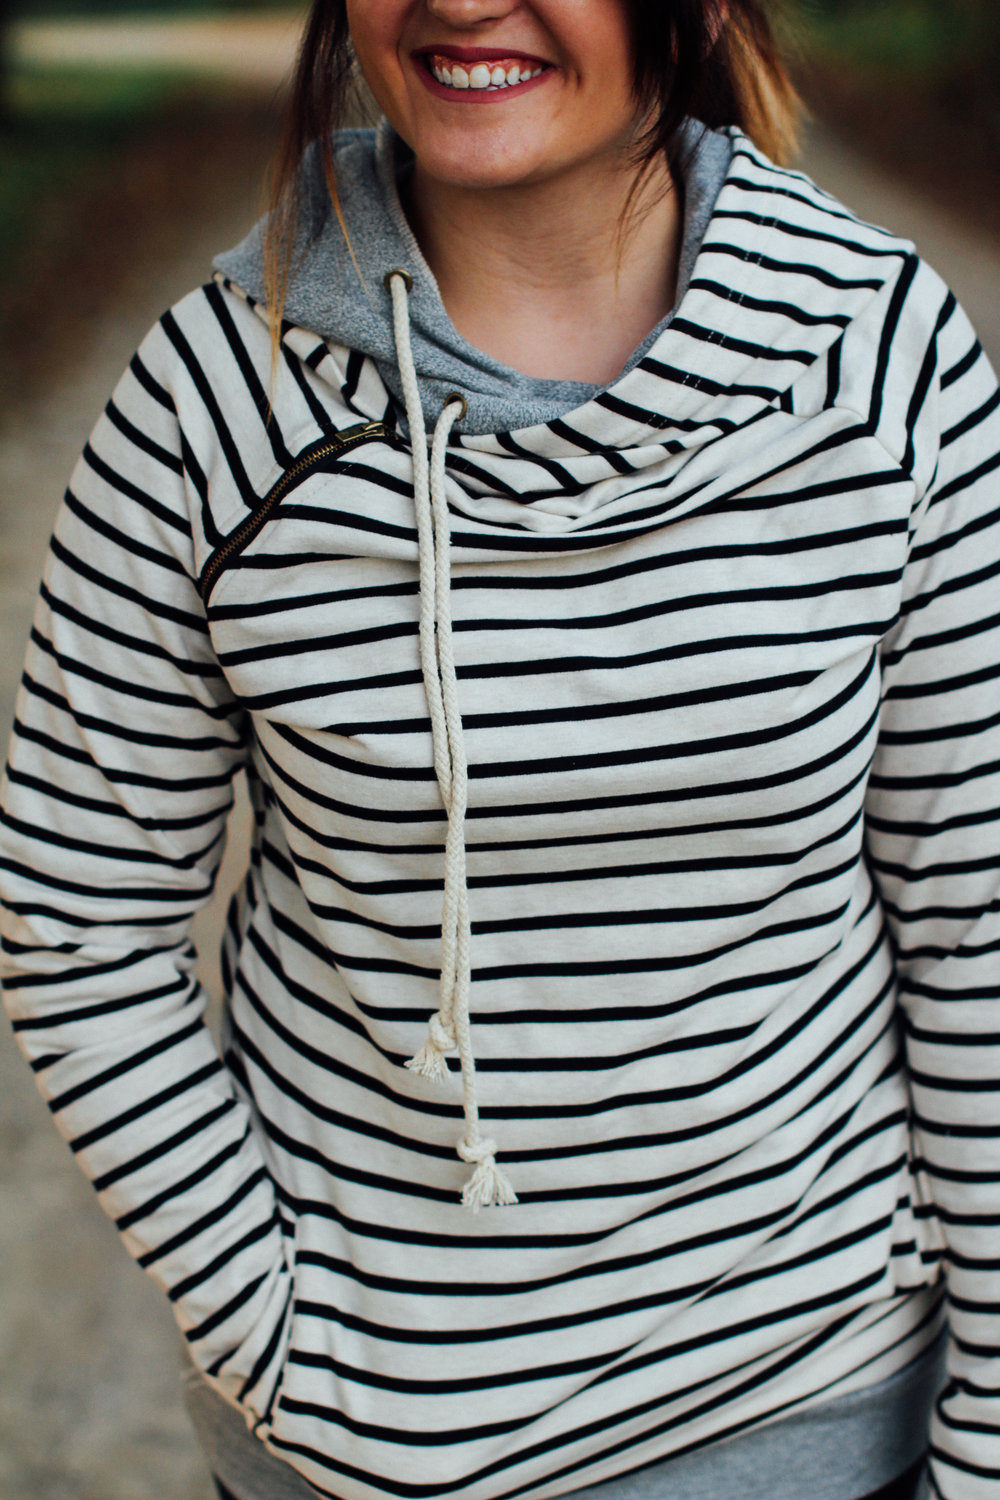 Double Hooded Sweatshirt via chelceytate.com @chelceytate @mindymaesmarket @madewell @urbanoutfitteres @altardstate @nordstrom